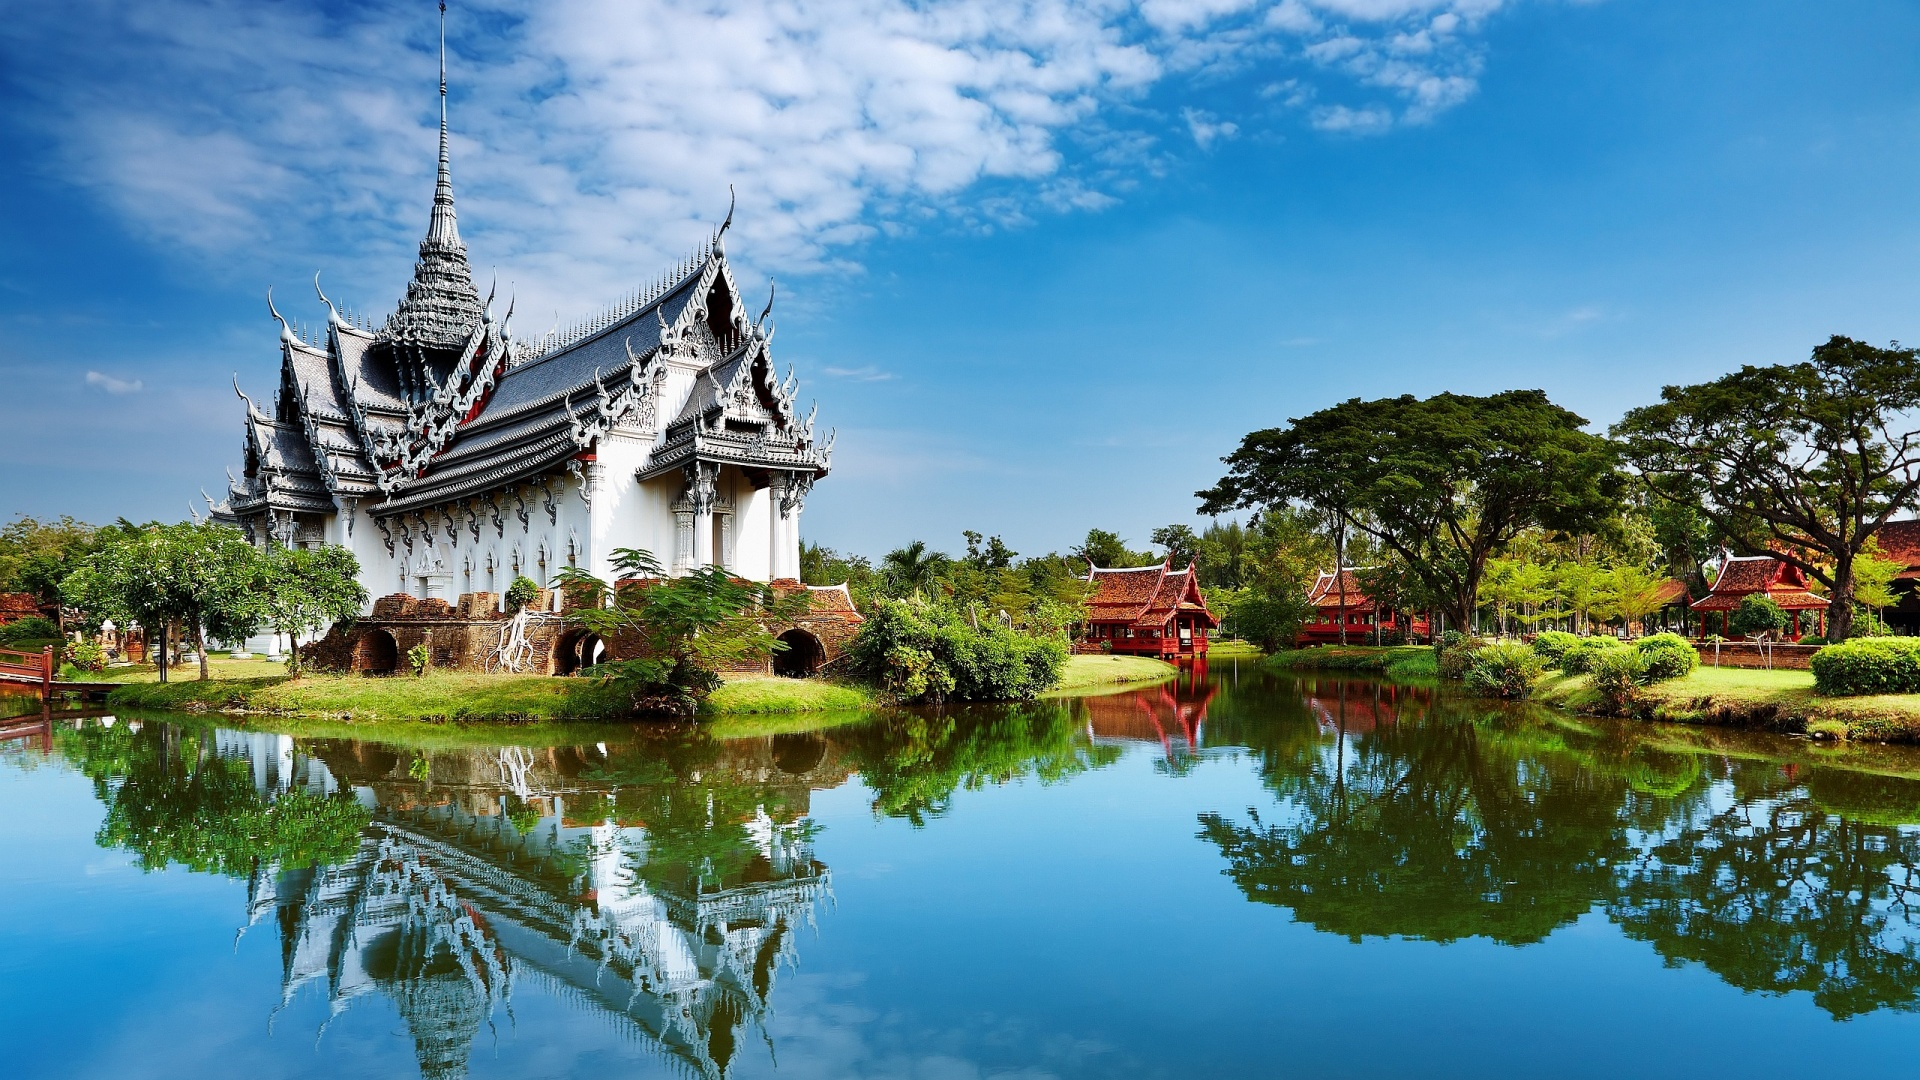 With Yatra's 3N Pattaya & 2N Bangkok Excitement package, you get to take a fantastic trip to the two most popular tourist destinations in Thailand- the cosmopolitan city of .